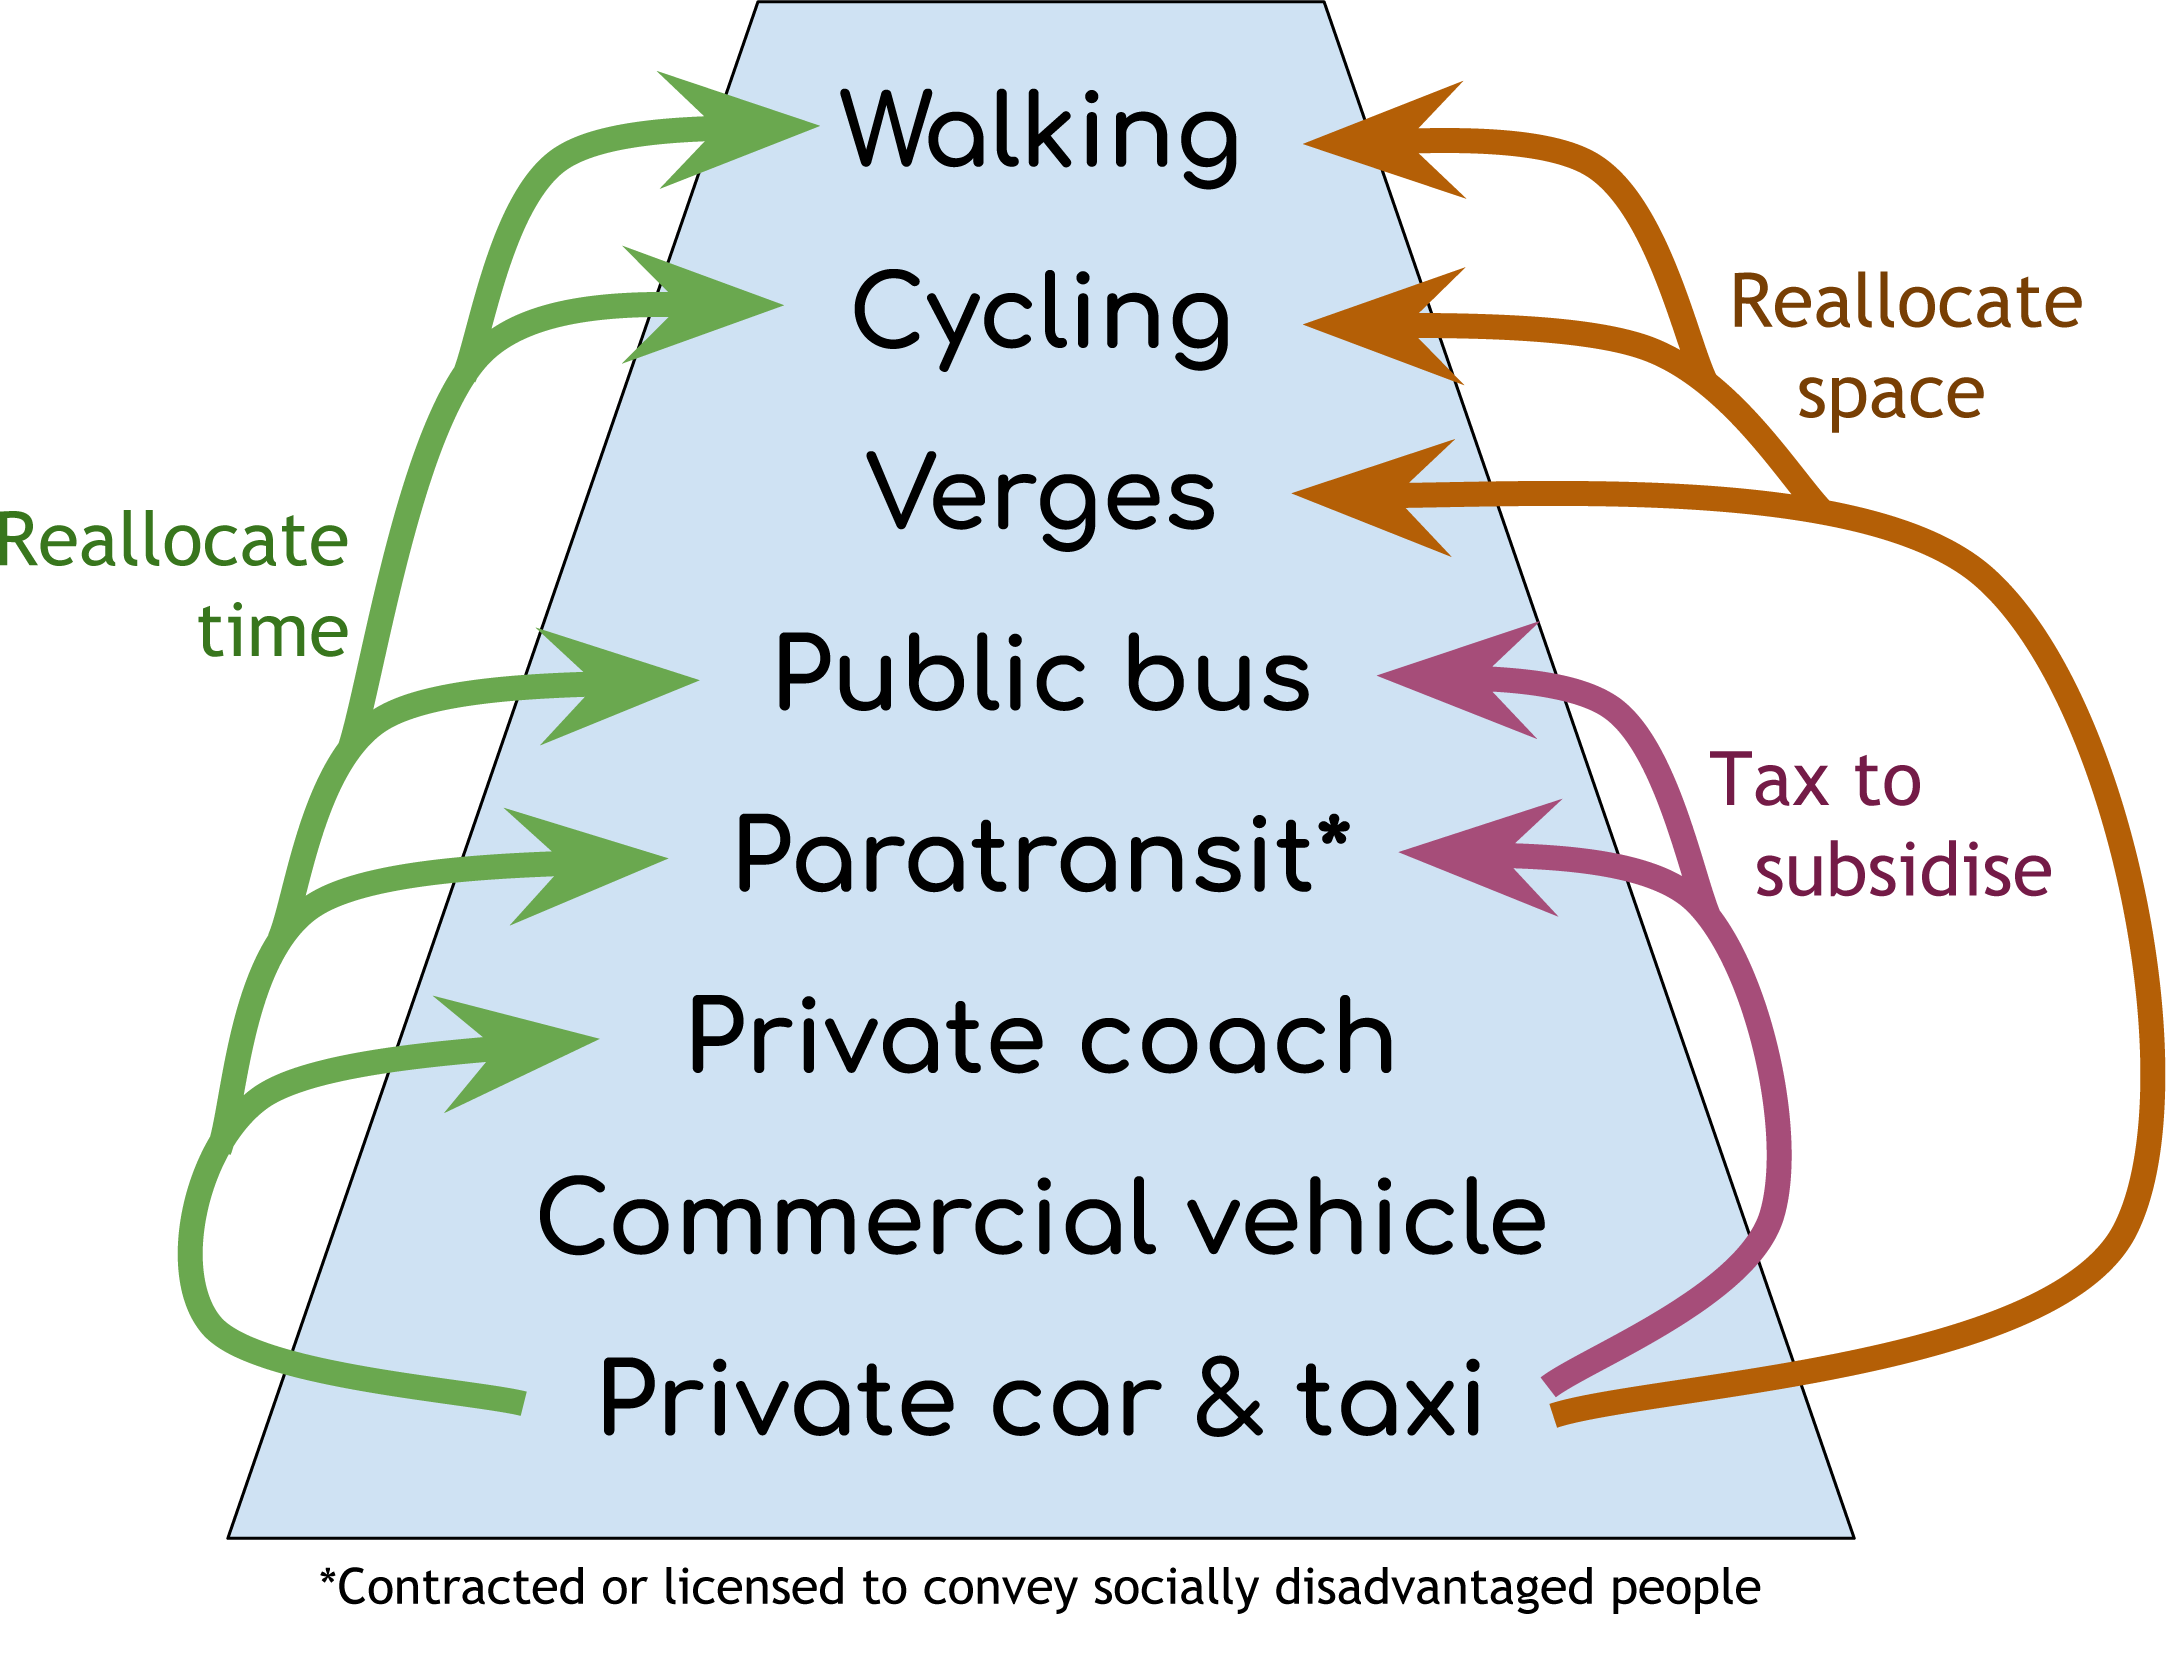 Revised urban transport hierarchy